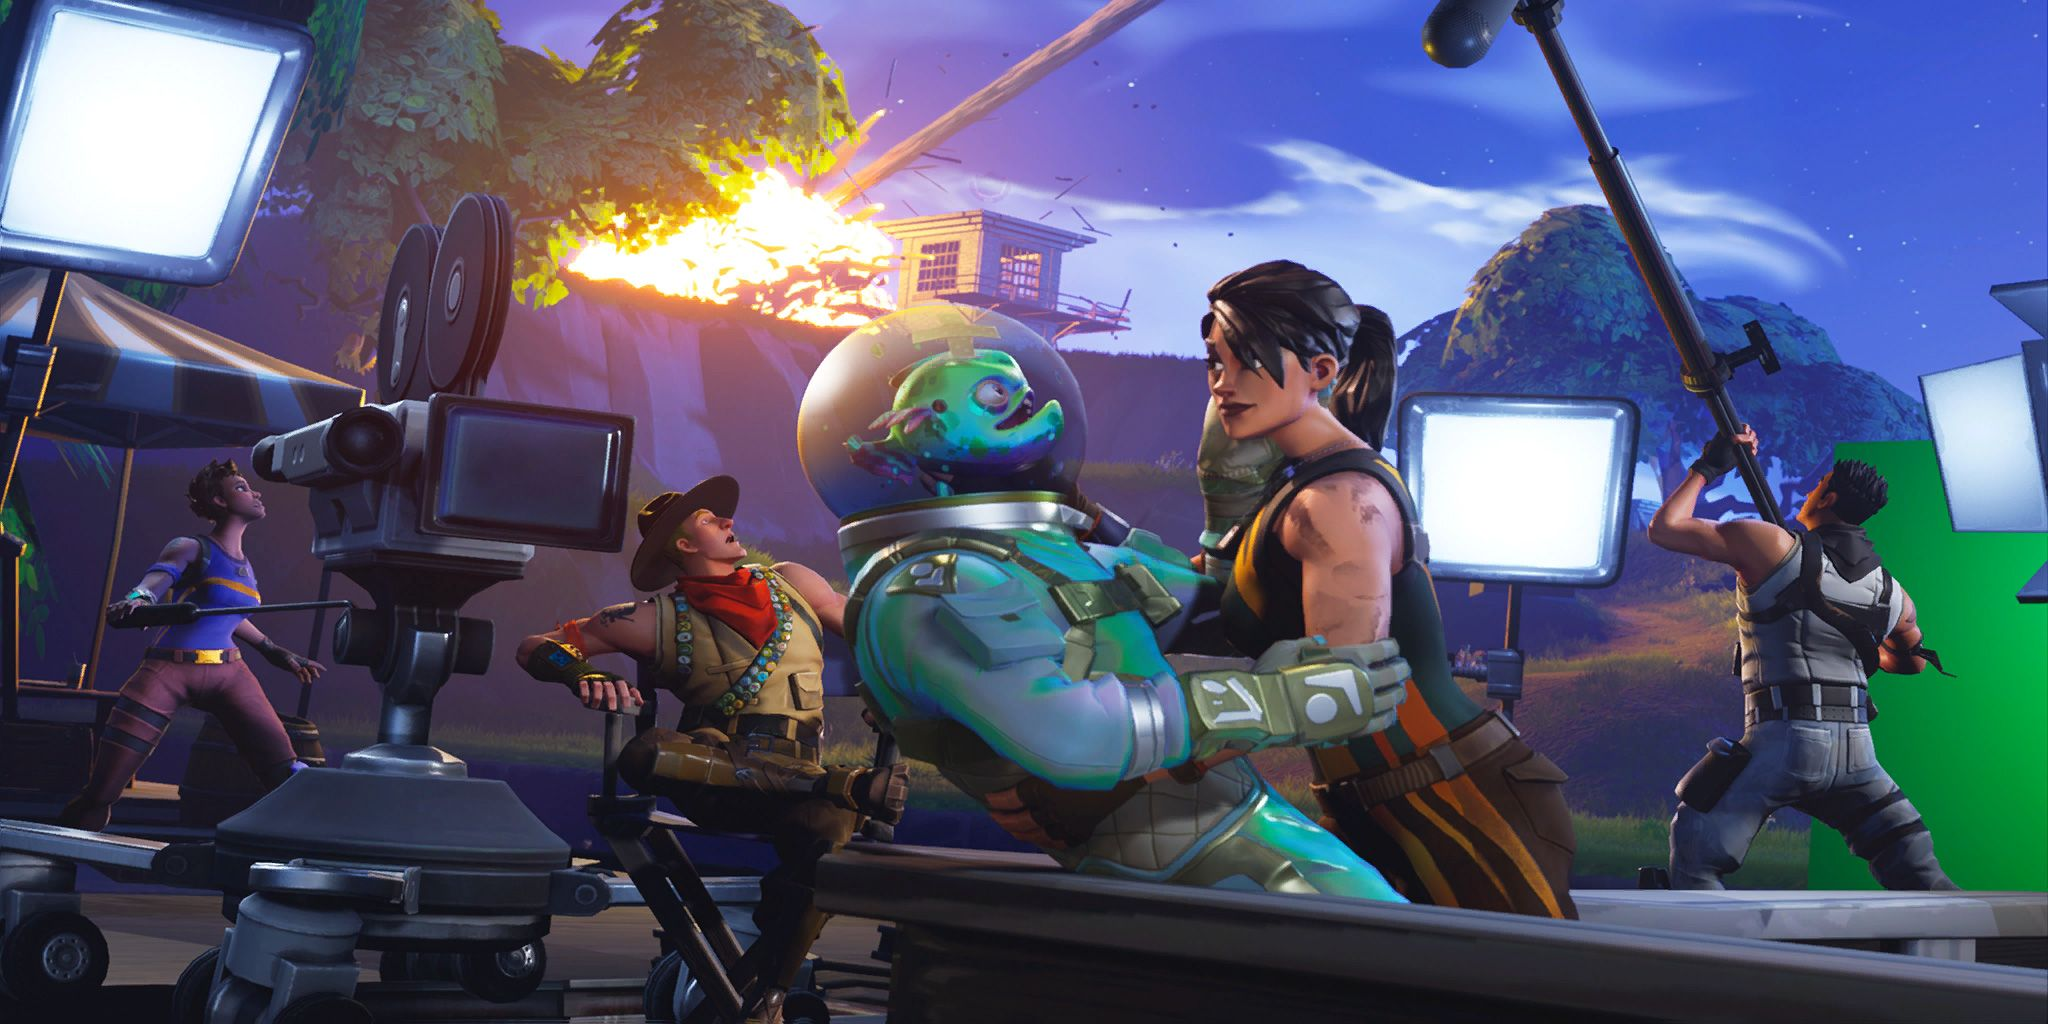 Fortnite Loading Screen Wallpaper Hd Desktop Background Skins